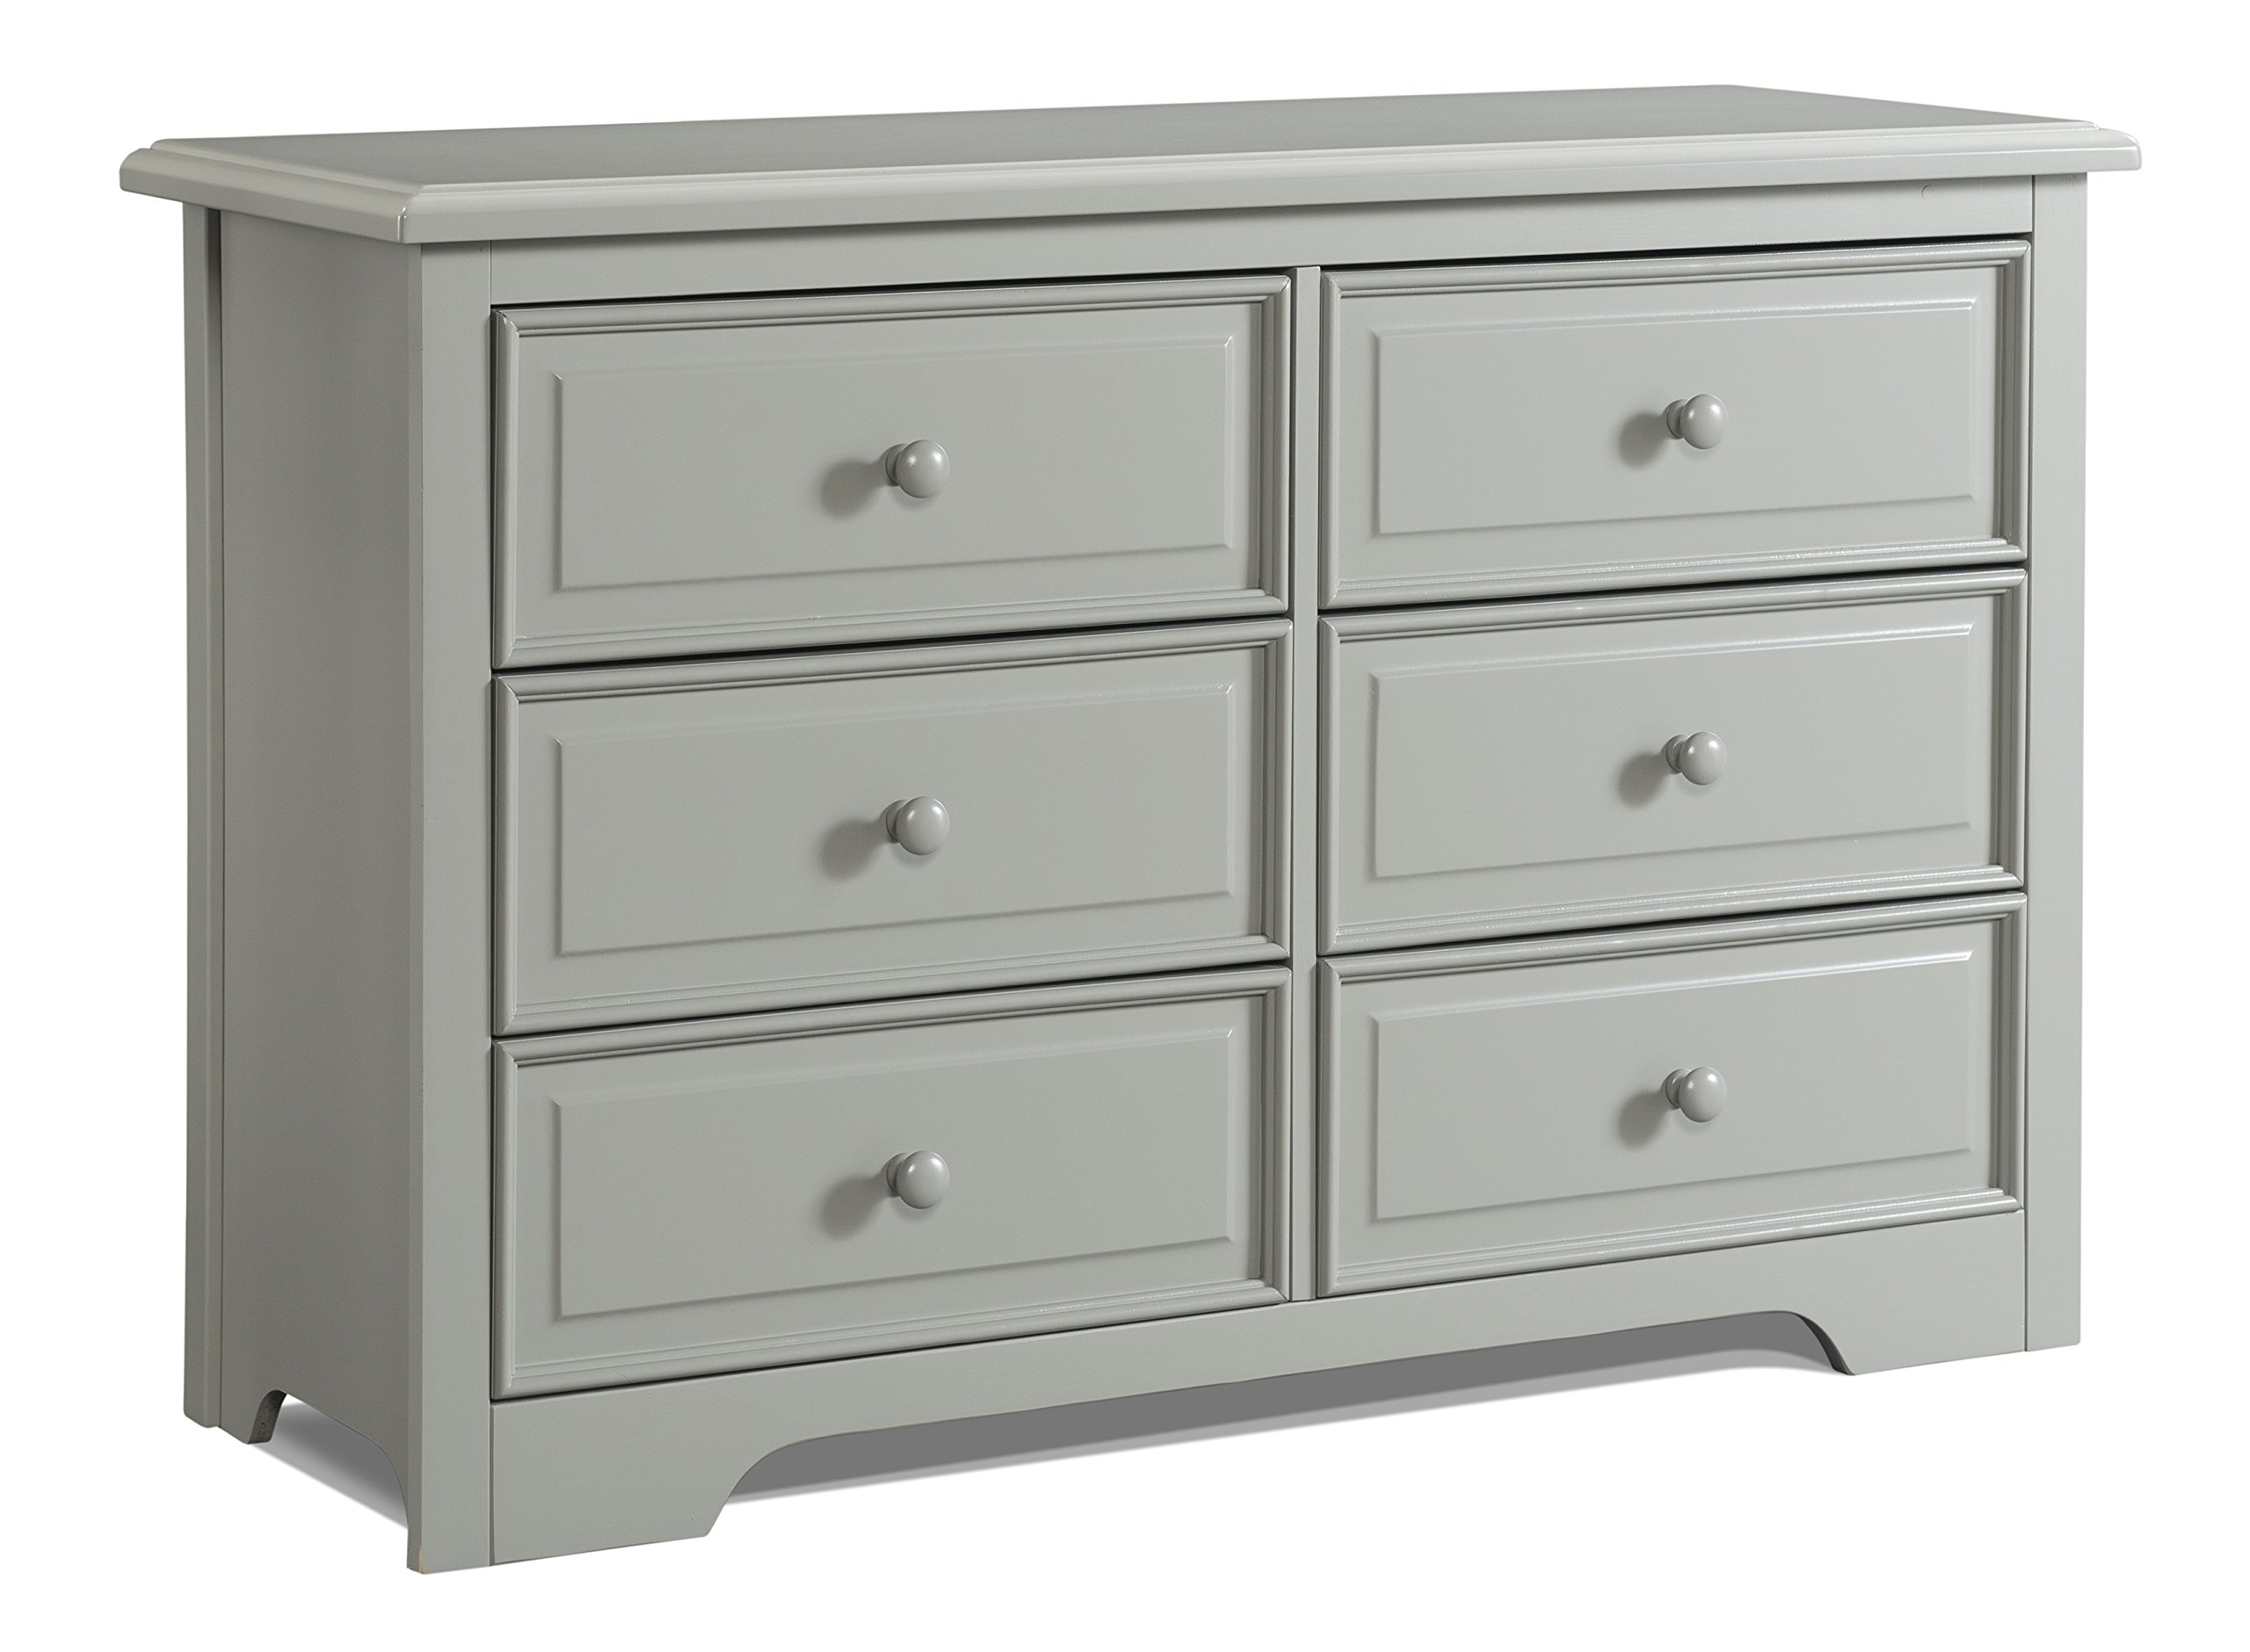 Wood and Composite Construction Ideal for Nursery Toddlers Room Kids Room Kids Bedroom Dresser with 4 Drawers Gray Storkcraft Brookside 4 Drawer Chest